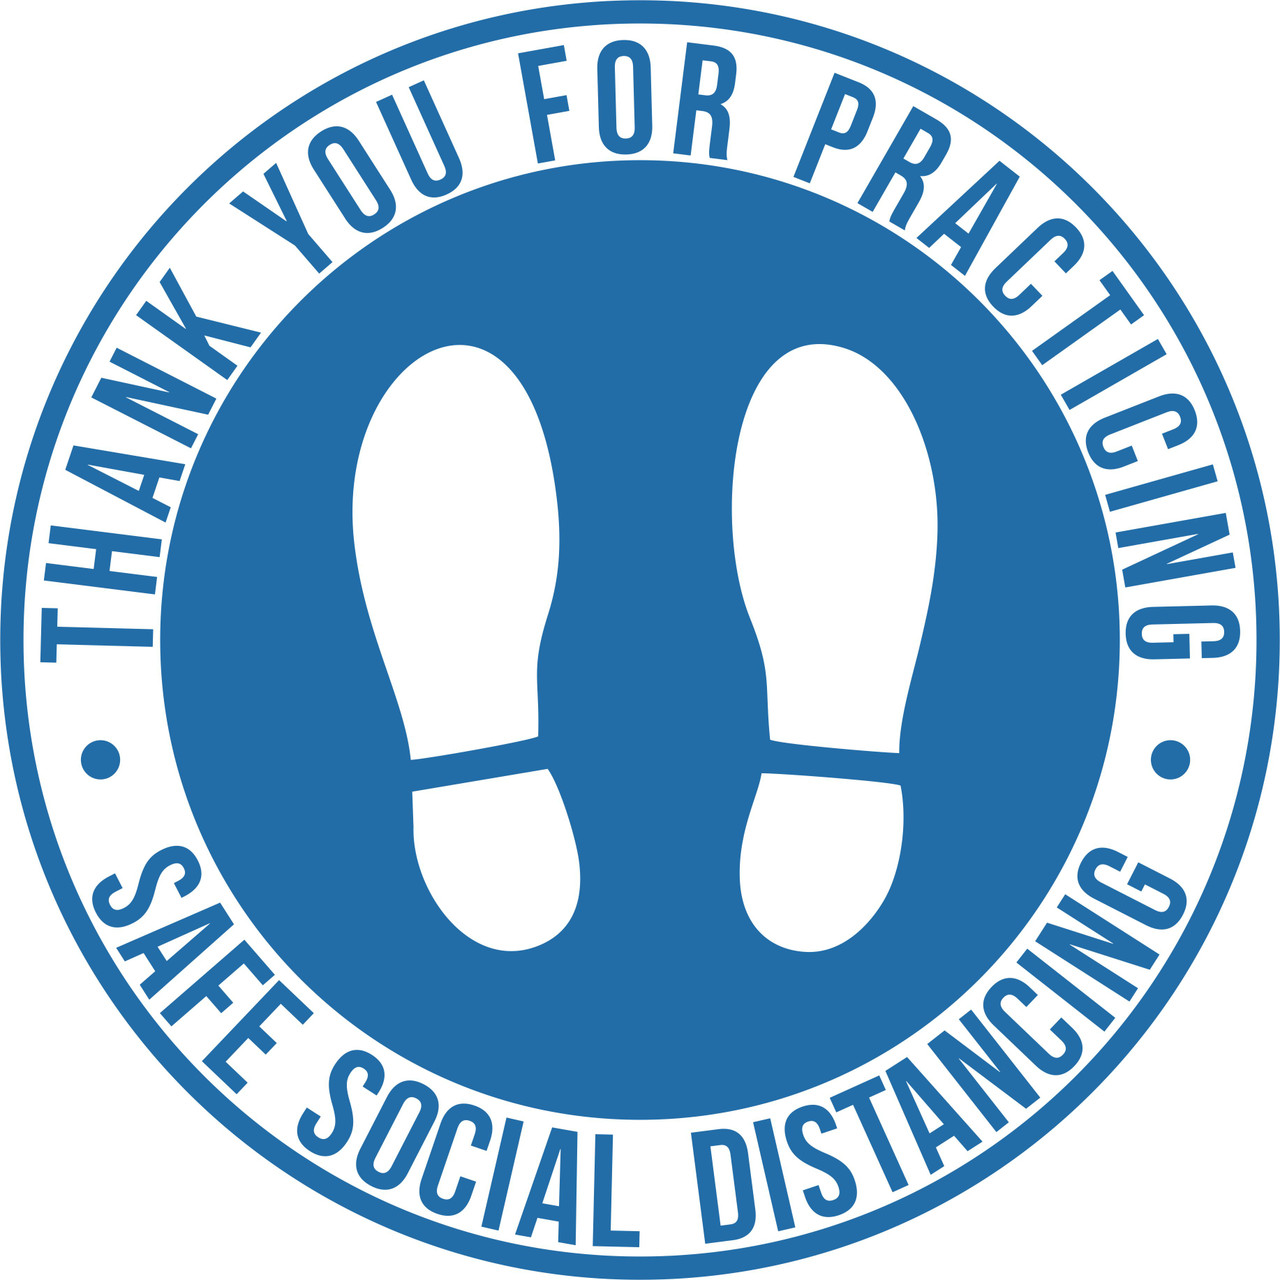 Safe Social Distancing Non-Slip Floor Decal | Round Safe Social Distancing Floor Sticker